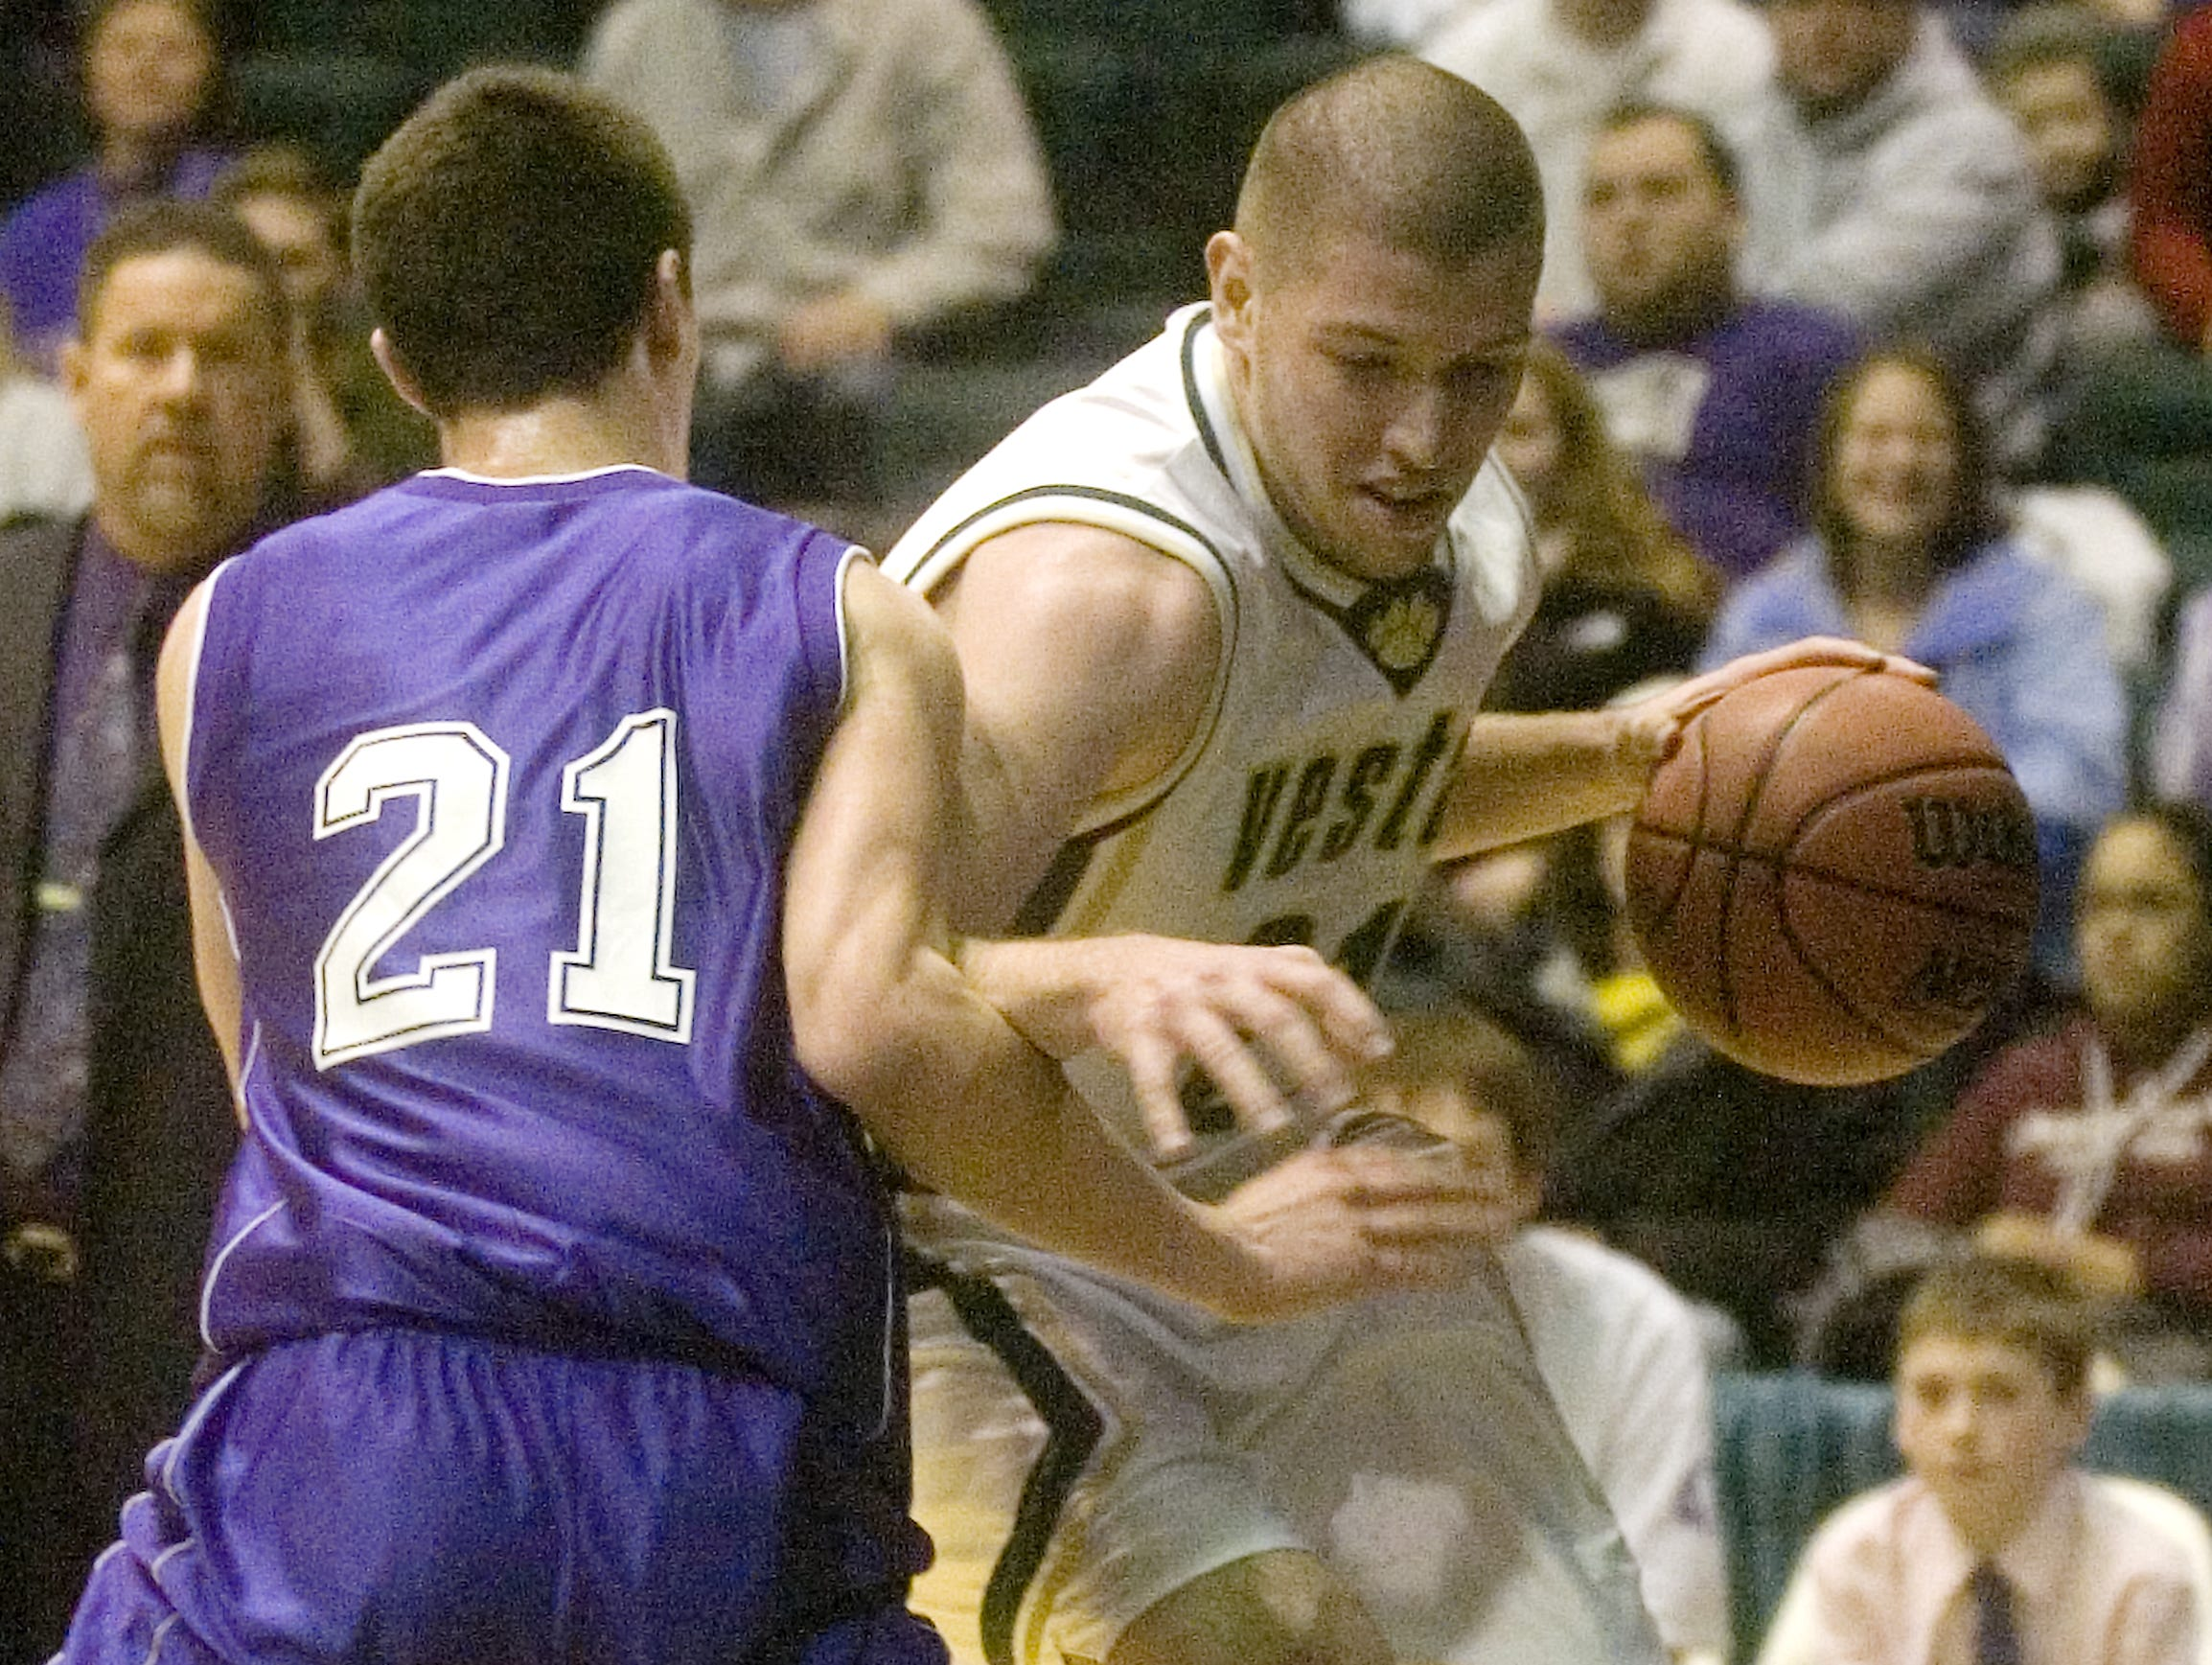 2009: Norwich's David Carson, left, guards Vestal's Cameron Boyden in the first quarter of Saturday's STAC finals game at the Events Center.